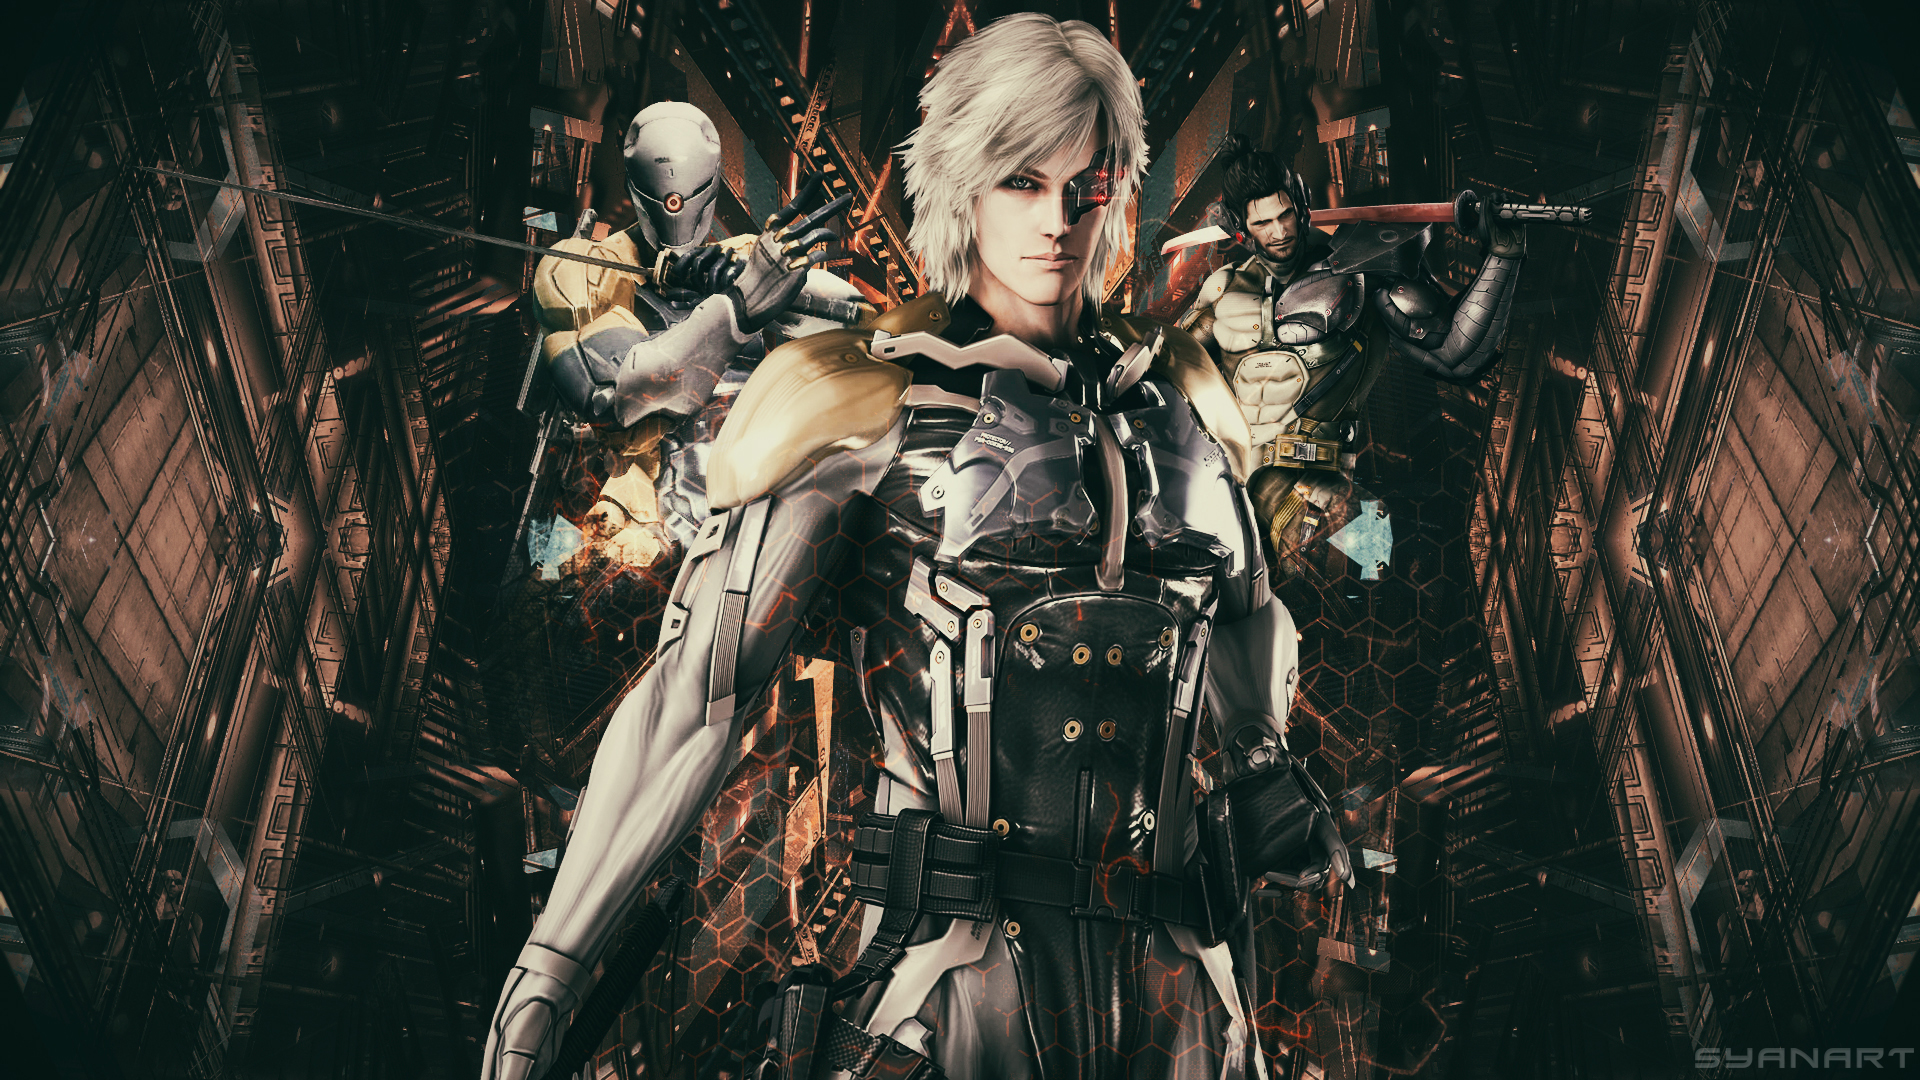 metal gear rising revengeance wallpaper | syanart exclusive gaming